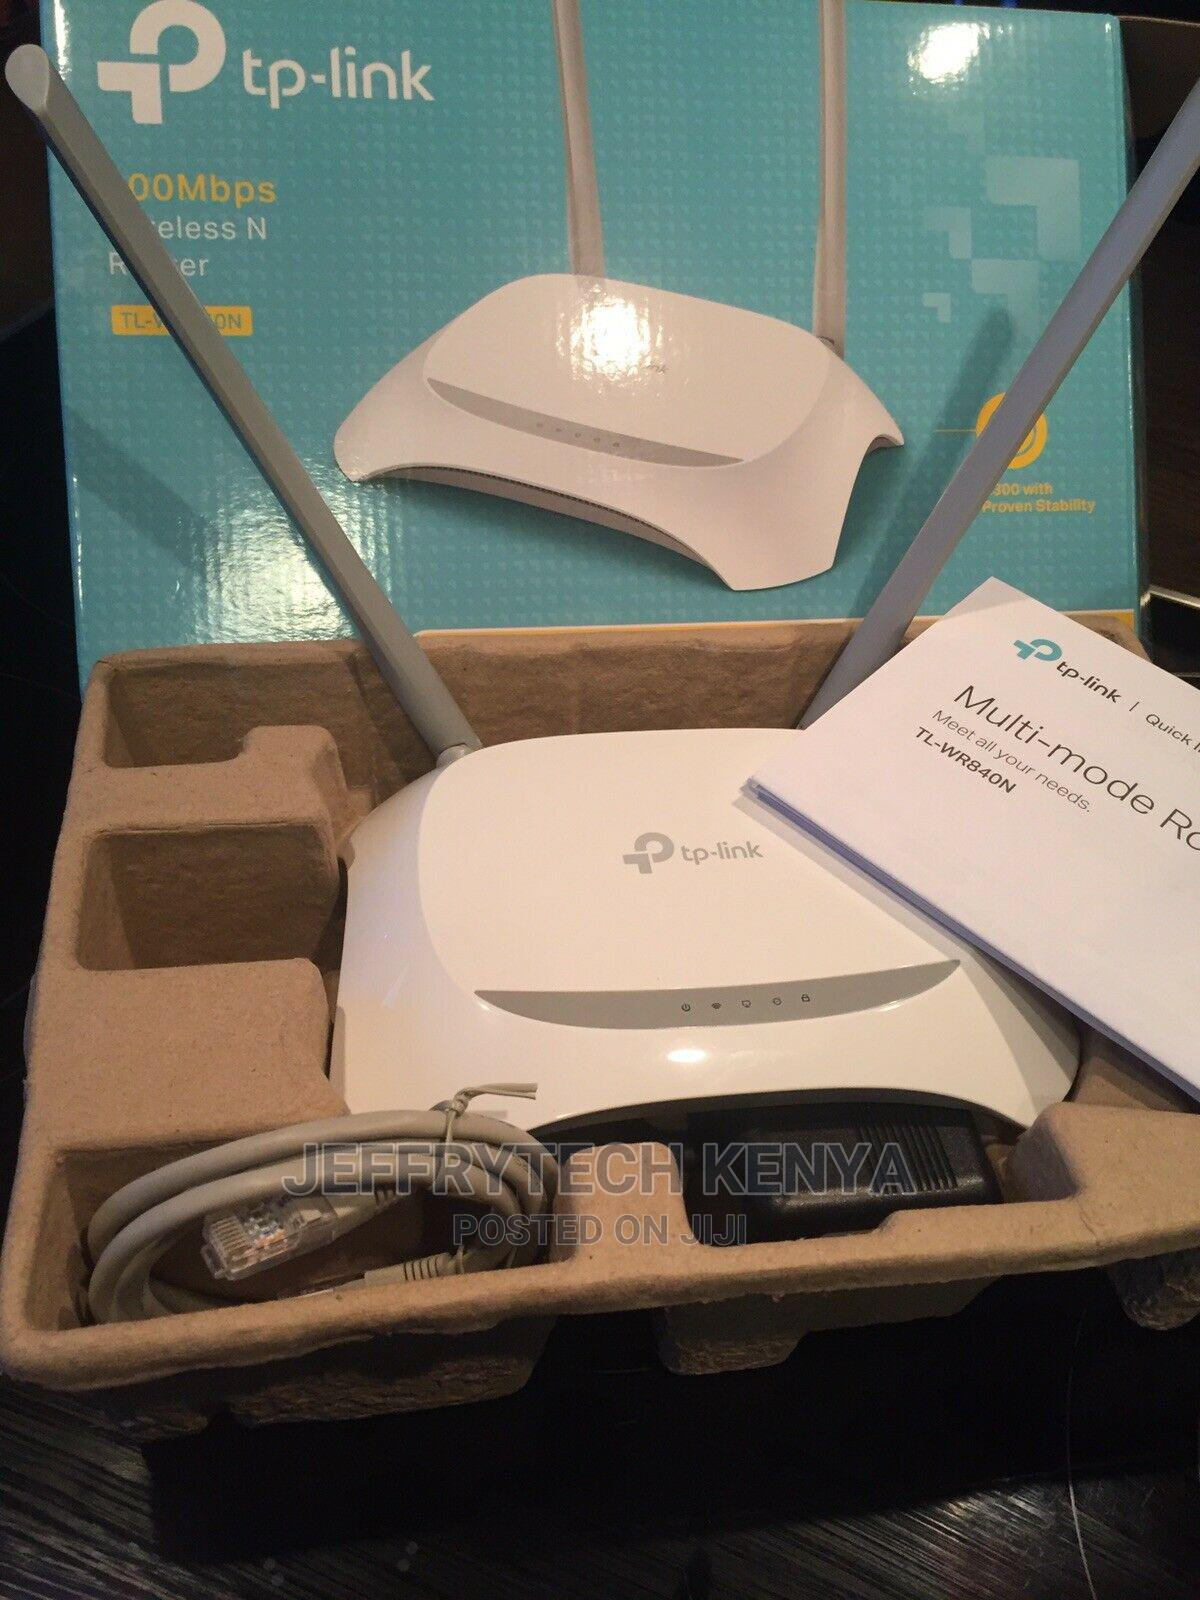 TP-LINK TL-WR840N - Wireless Router